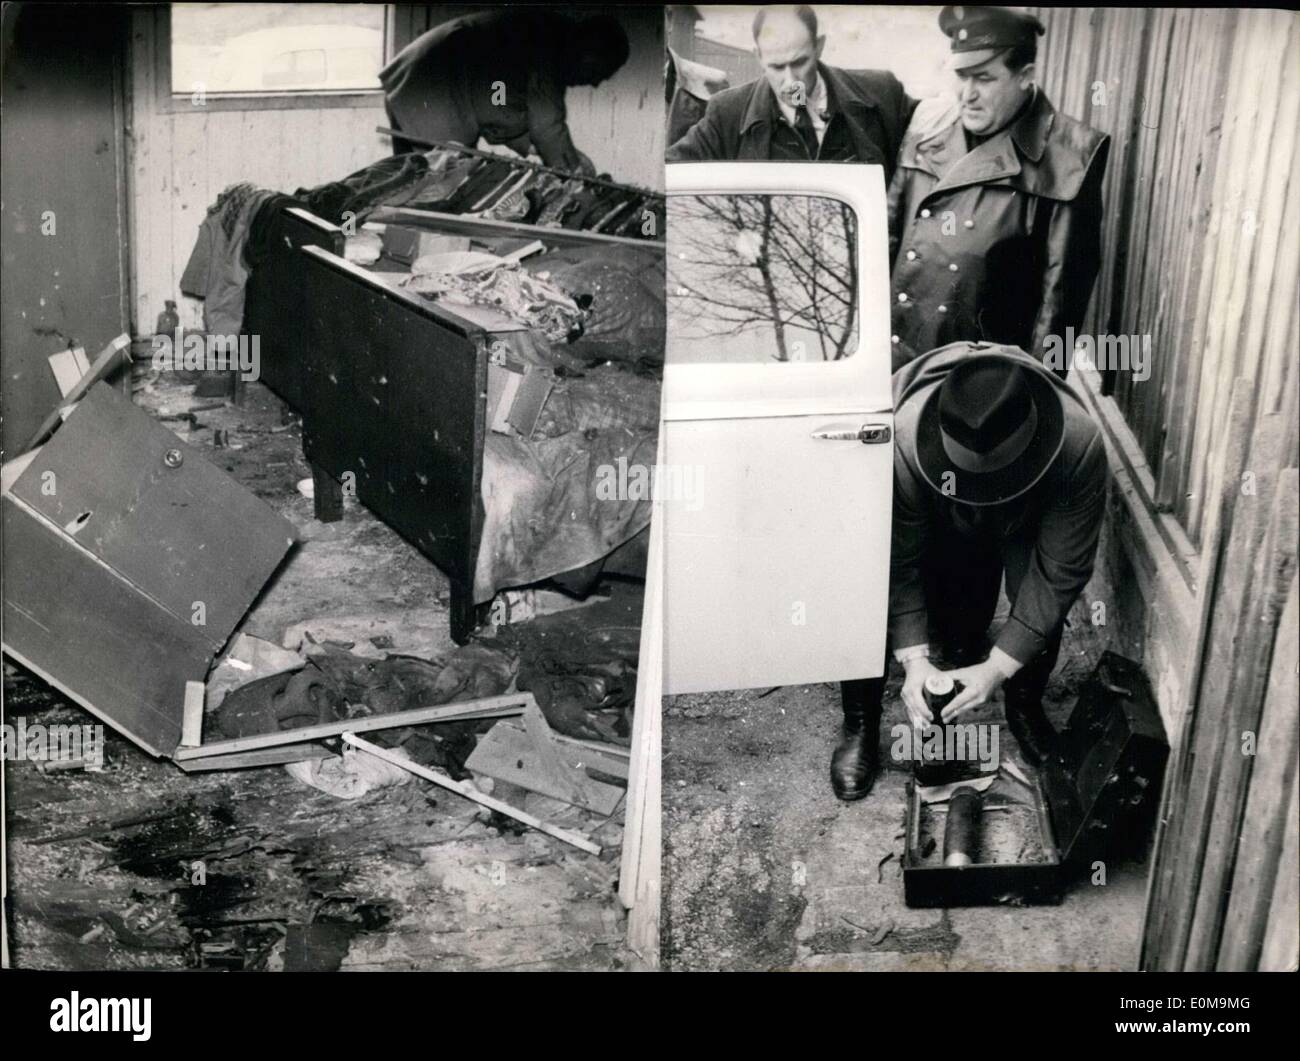 Apr. 13, 1954 - A mysterious shell bomb explosion in Nuernberg: A second time during the last six weeks a shell bomb explosion happened in Nuernberg. The 25 years old workless Horst Schlenk had a shell bomb in the room of his parents barack. Suddenly the shell bomb exploited. Horst Schrenk was torn into pieces a 13 years old boy who had been in the room besides was heavy wounded. Still another shell bomb was found in the same barrack. (picture right) - Stock Image